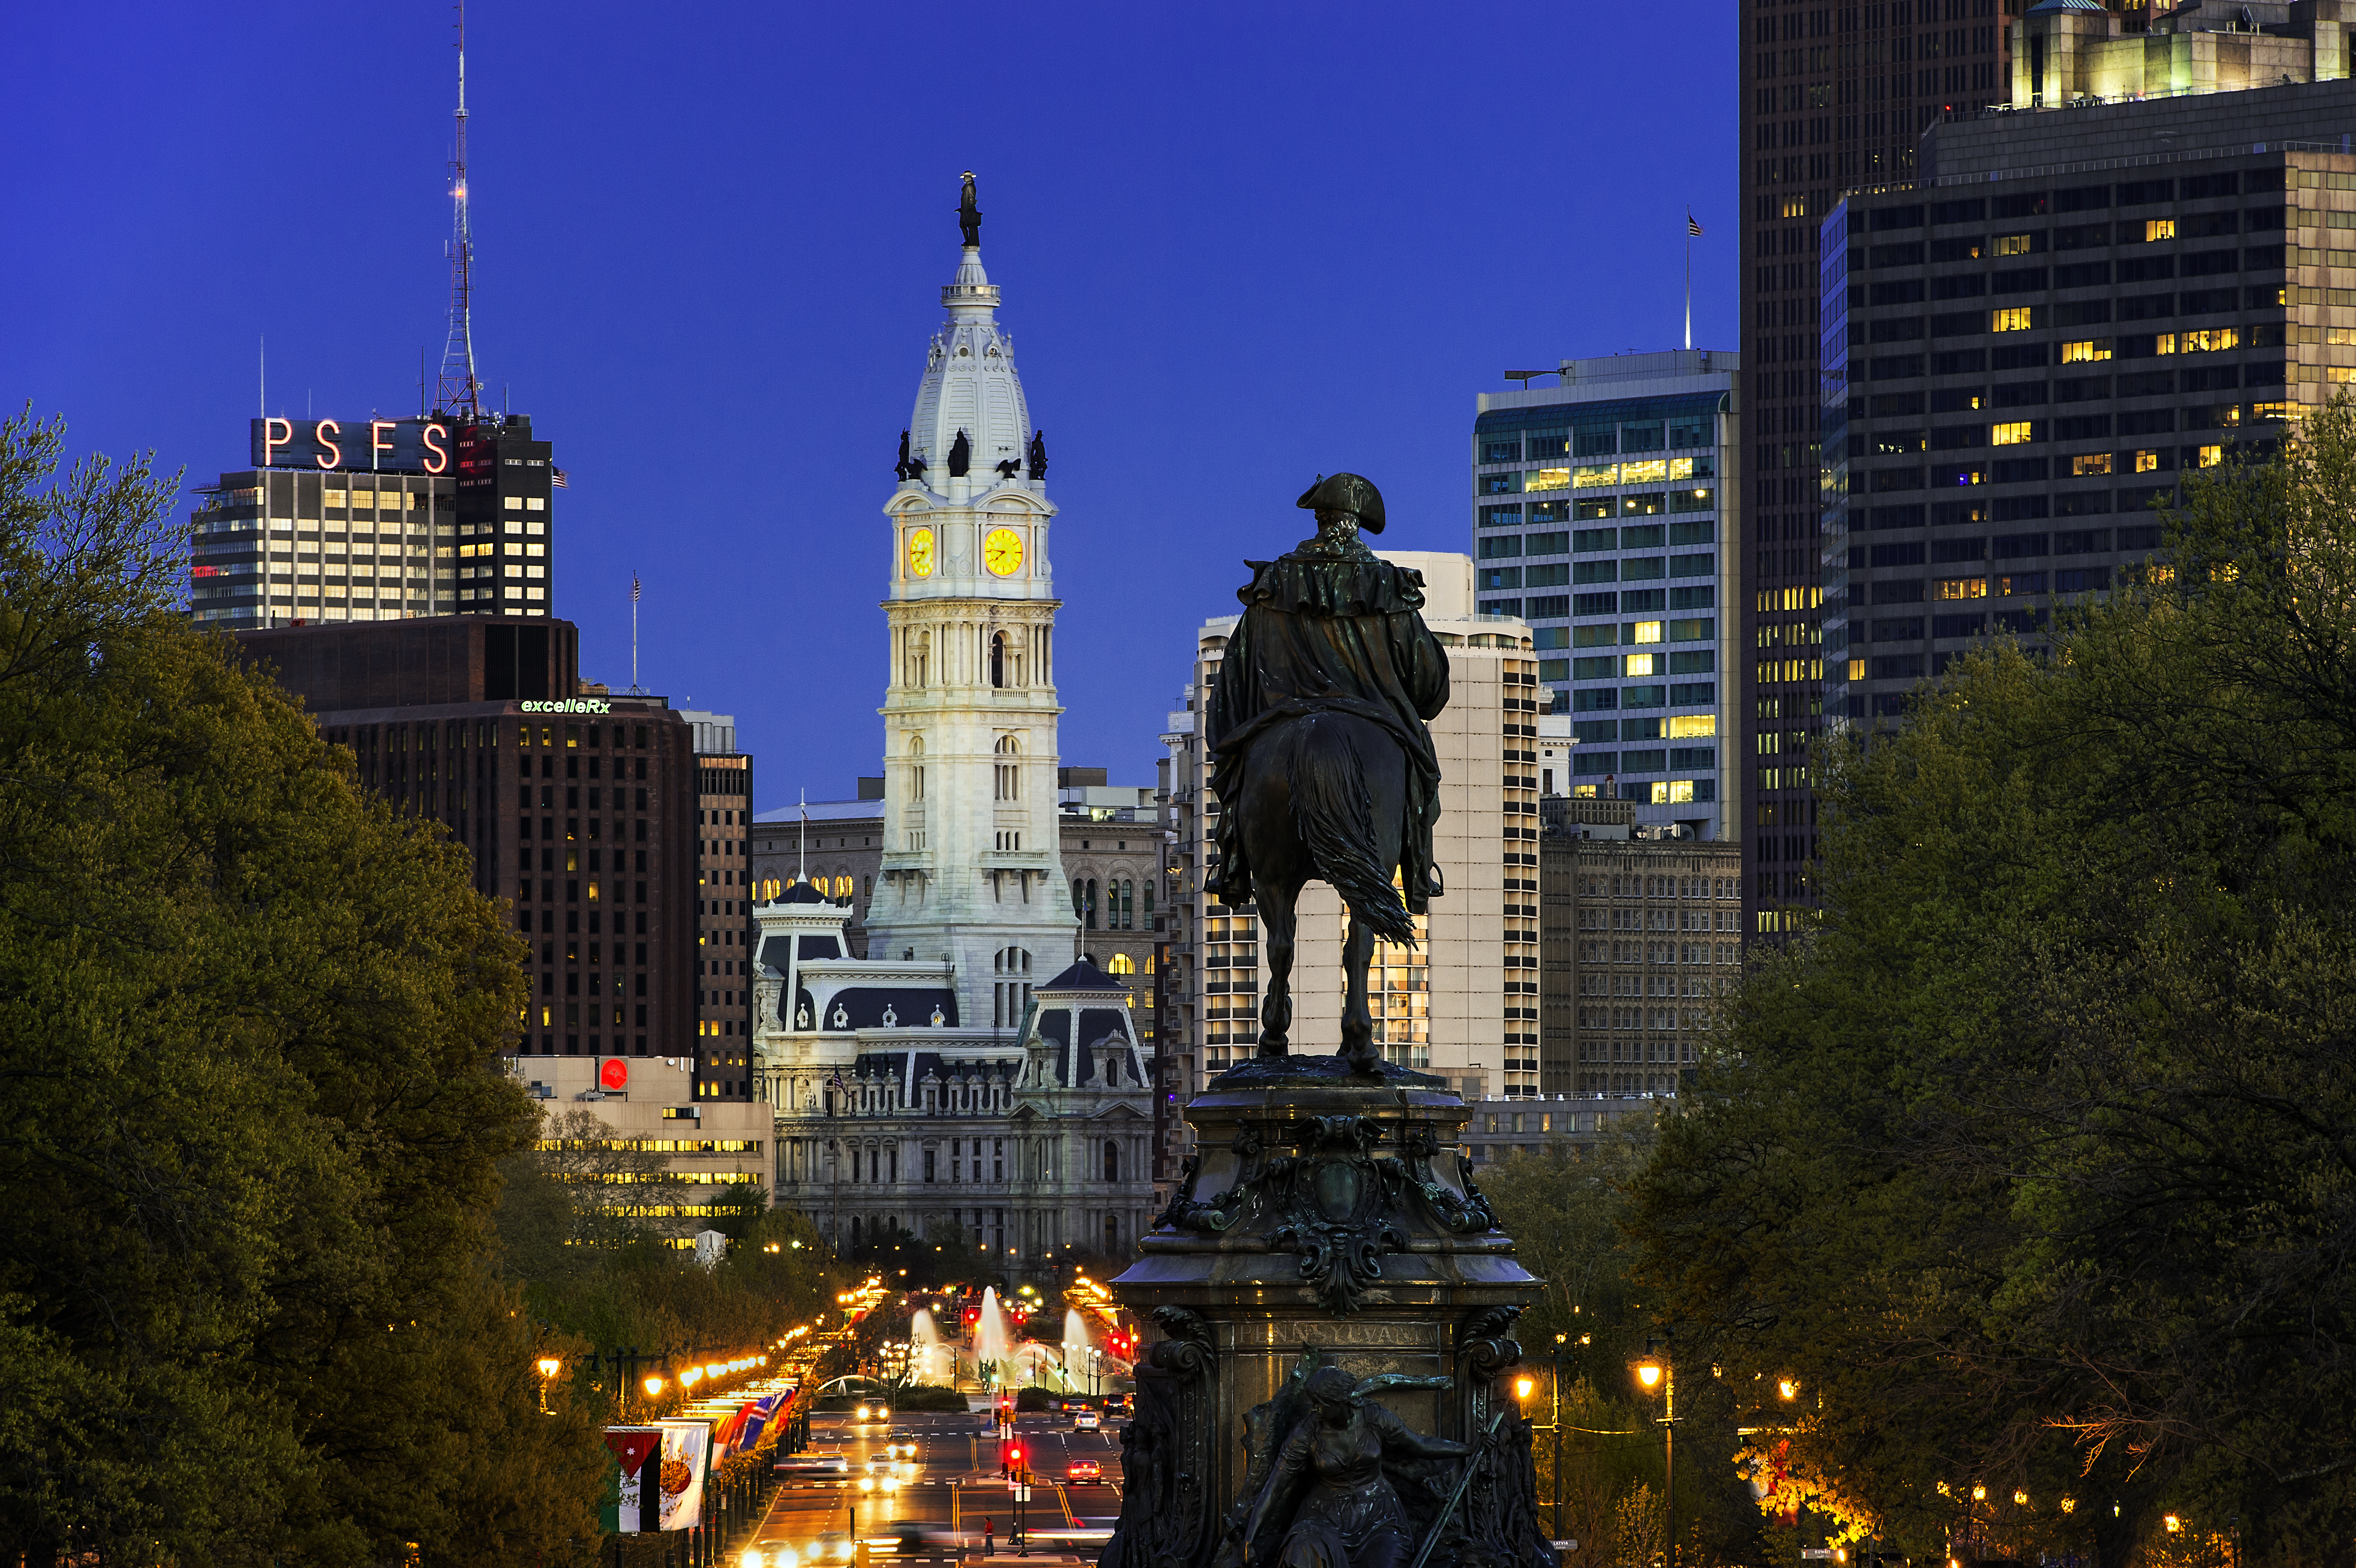 Ben Franklin Parkway and City Hall at night